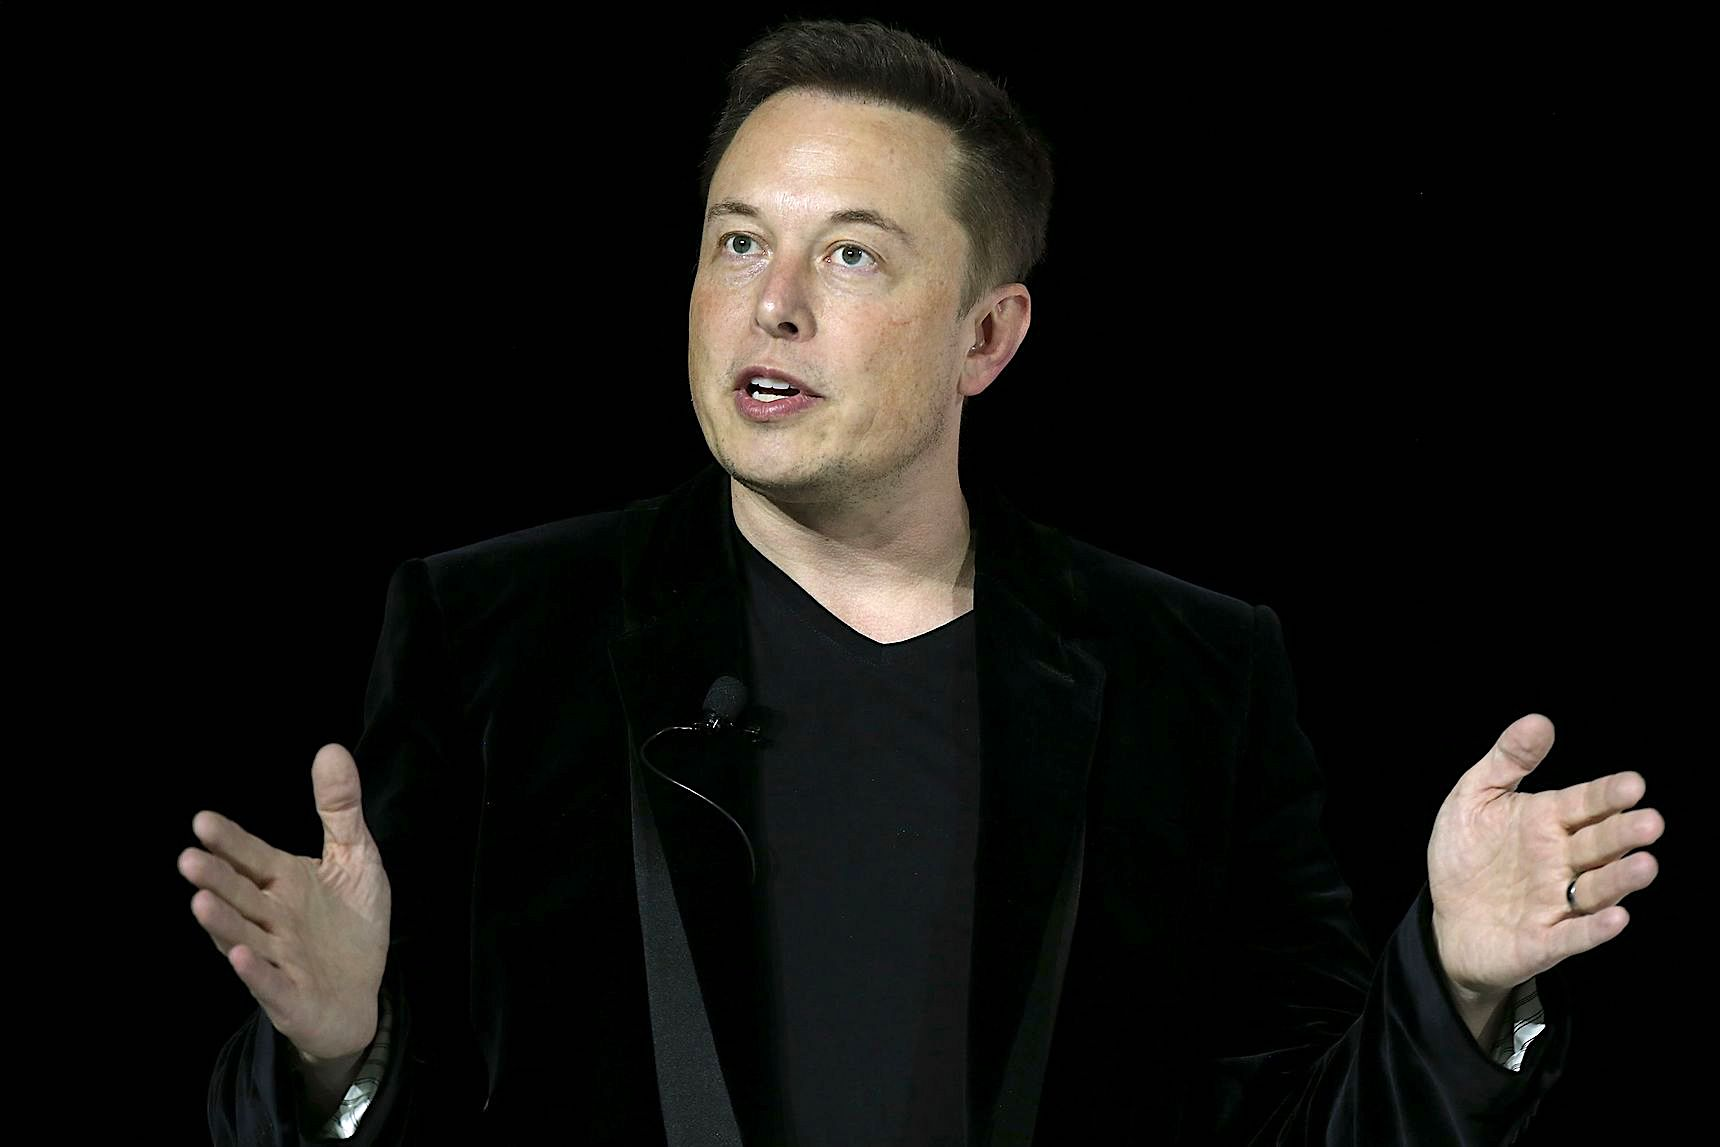 OH YES HE DID: Elon Musk Has Deleted Tesla and SpaceX's Facebook Pages